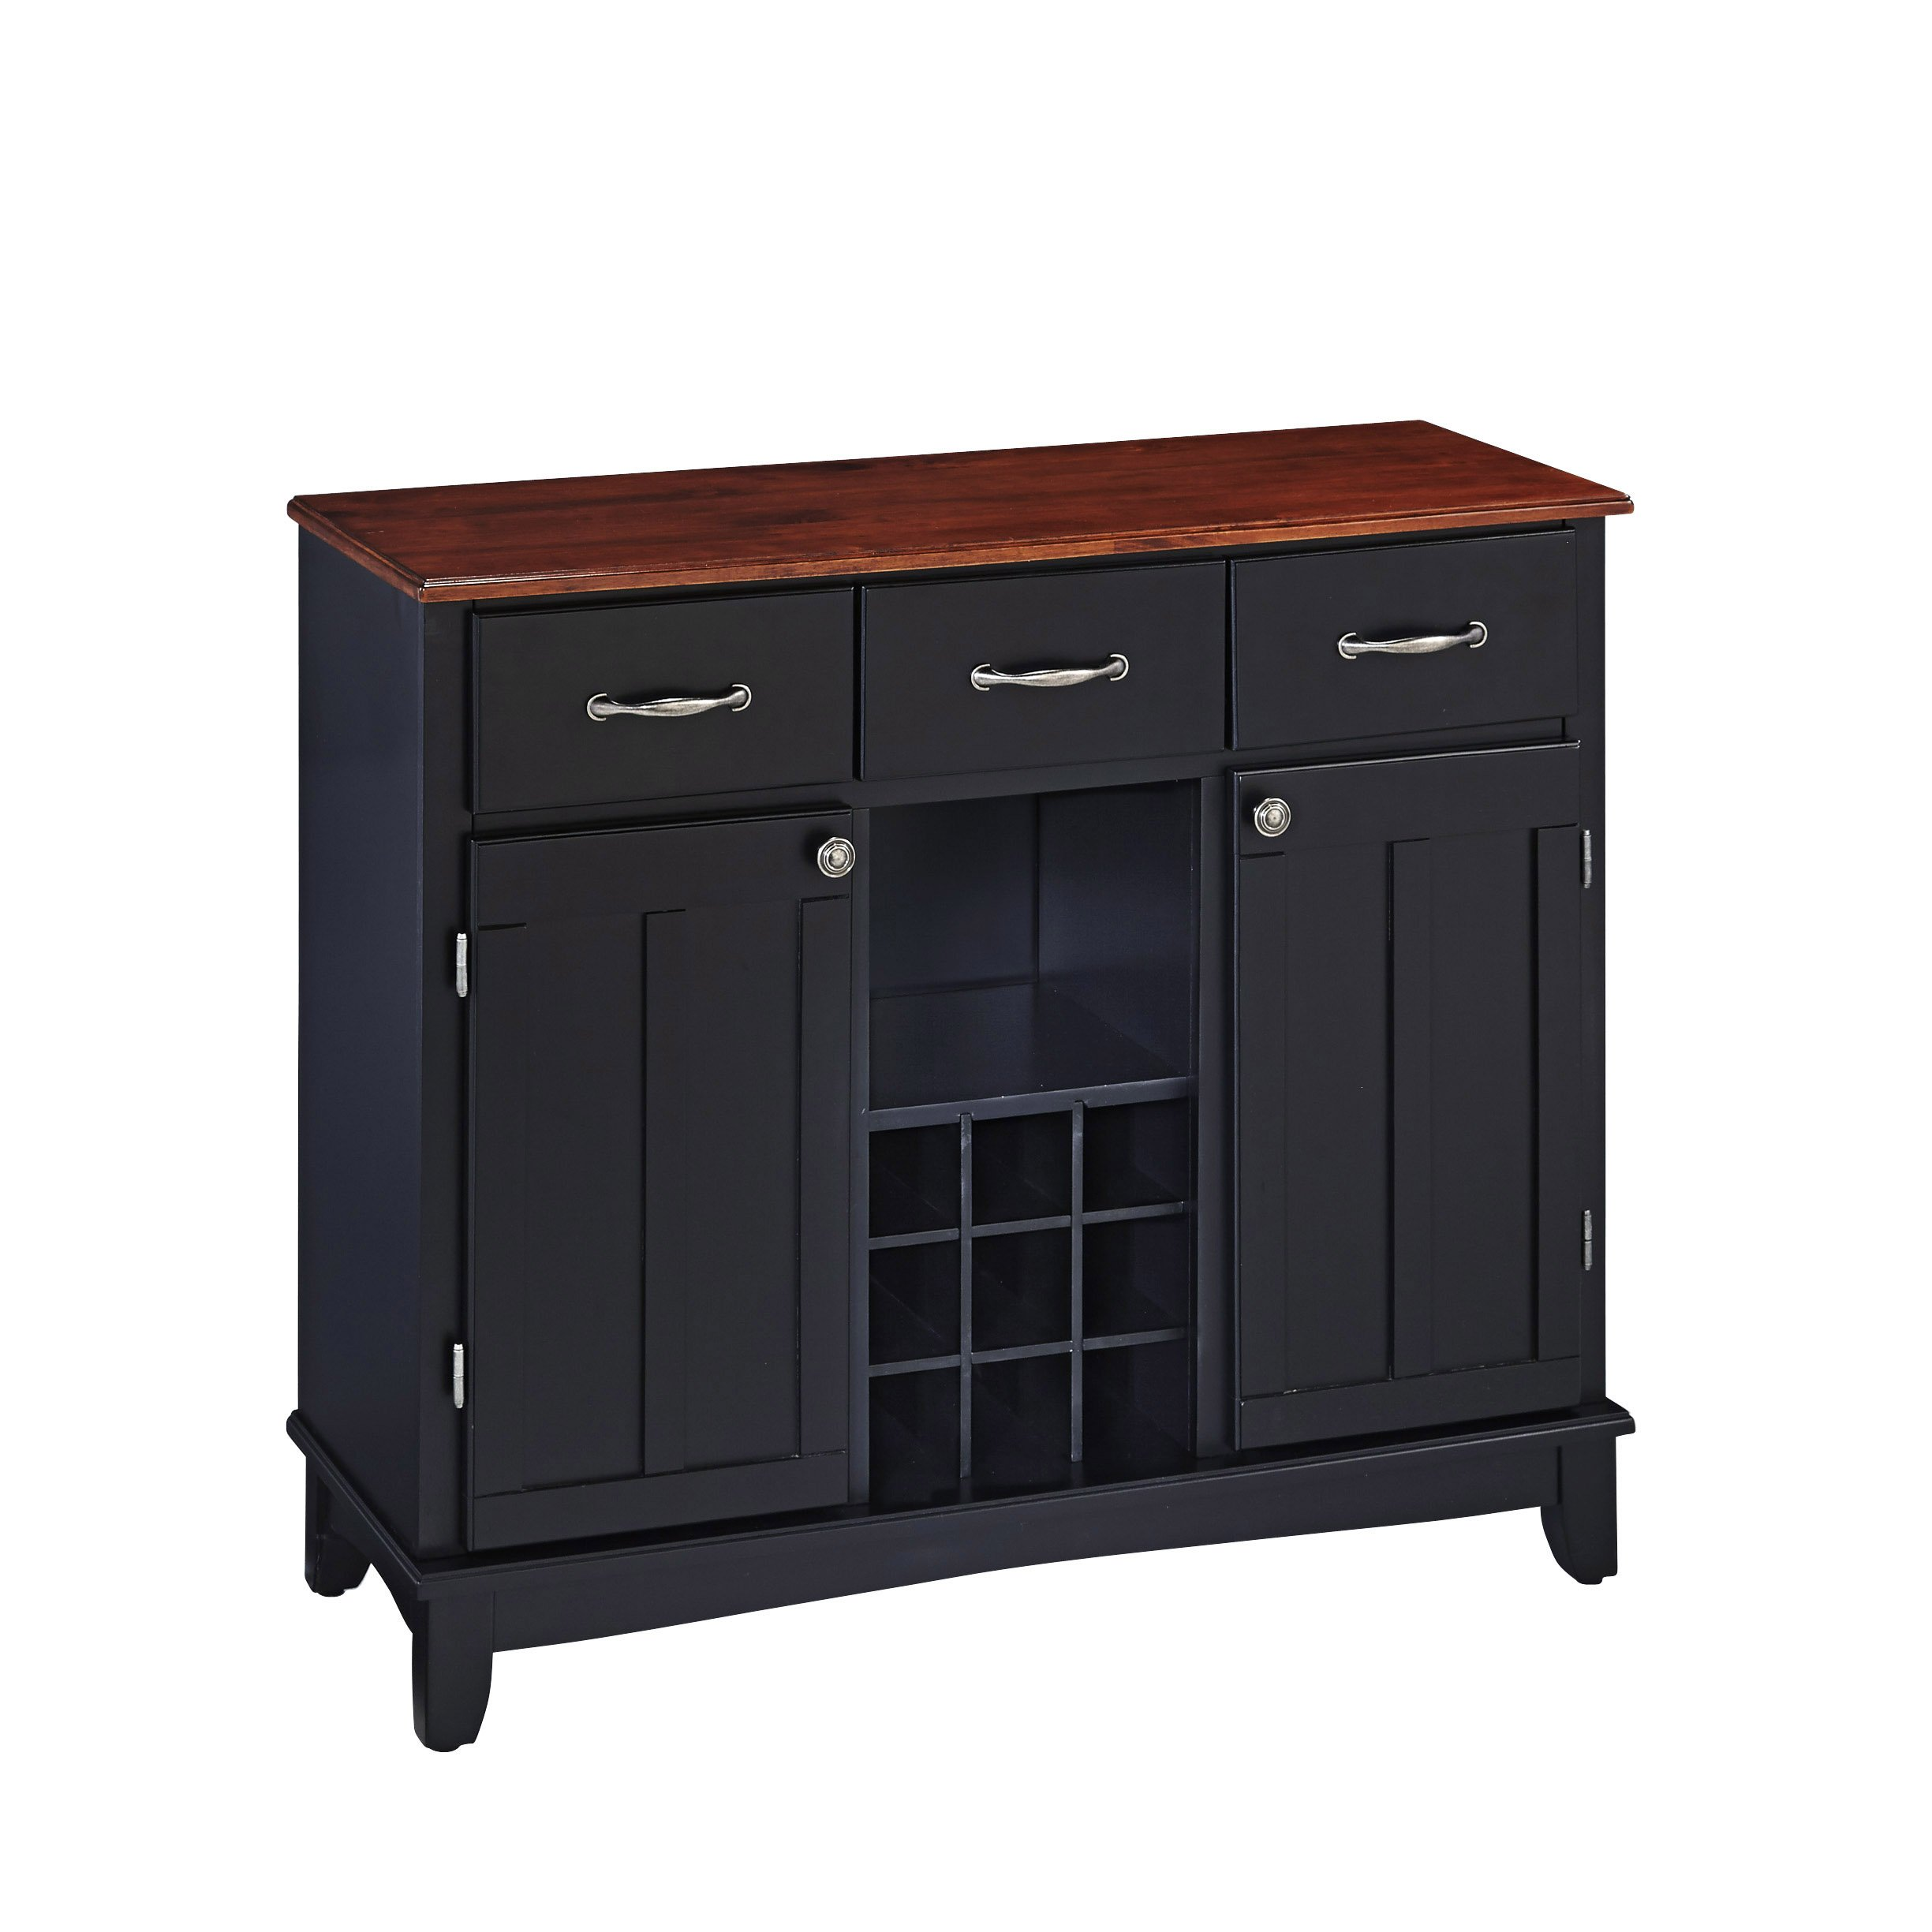 Buffet of Buffet Medium Black with Cherry Wood Top by Home Styles